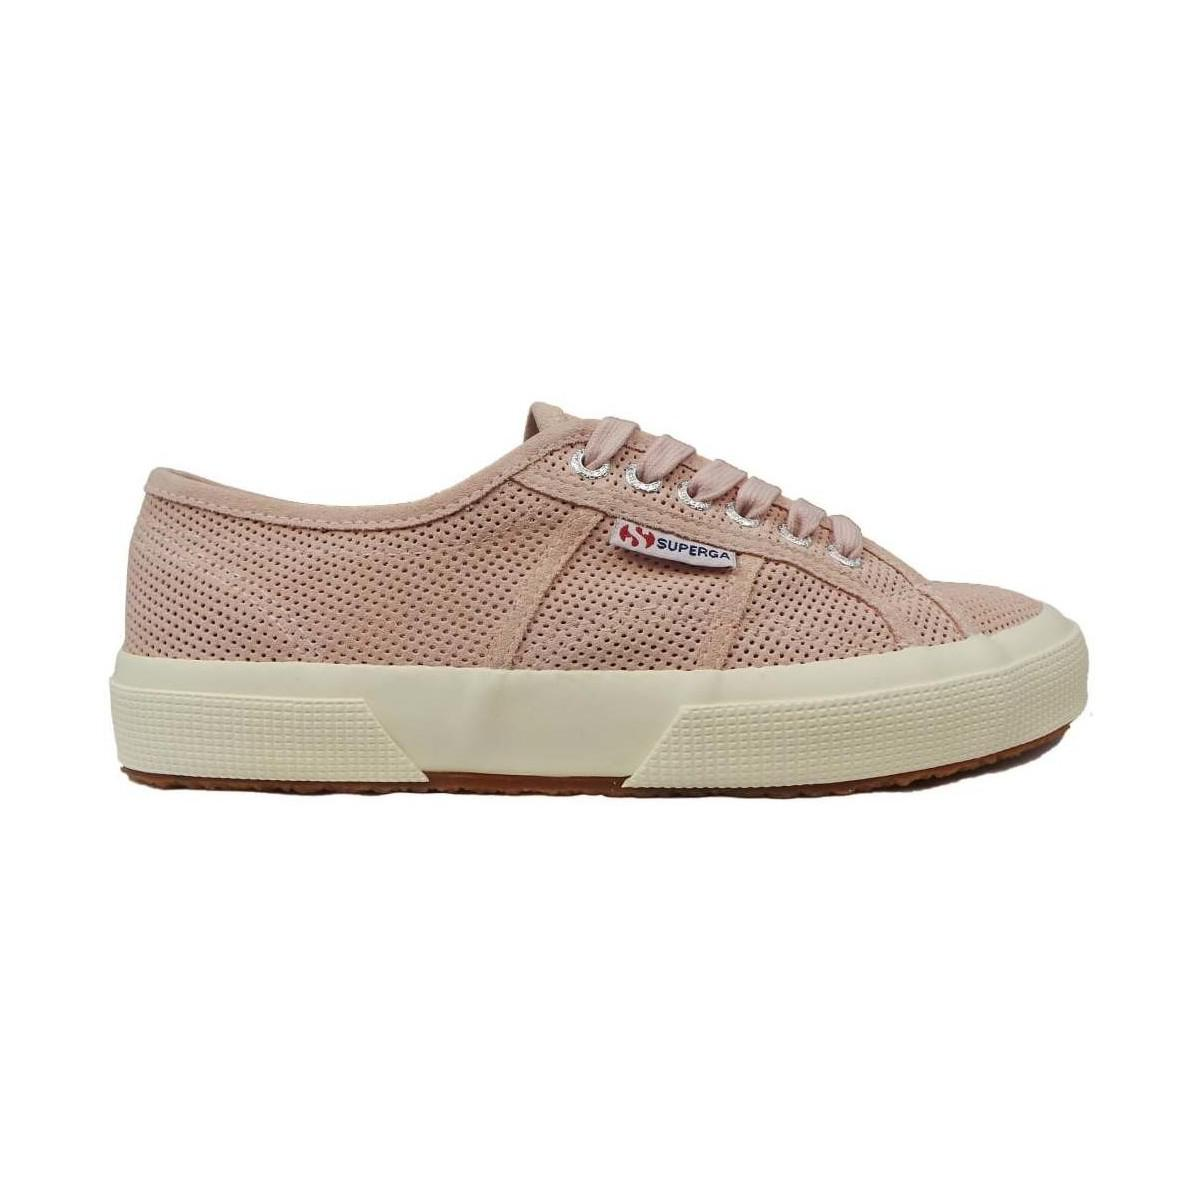 size 40 c0fd3 20a13 superga-pink-2750-Perfsuew-Womens-Shoes-trainers-In-Pink.jpeg